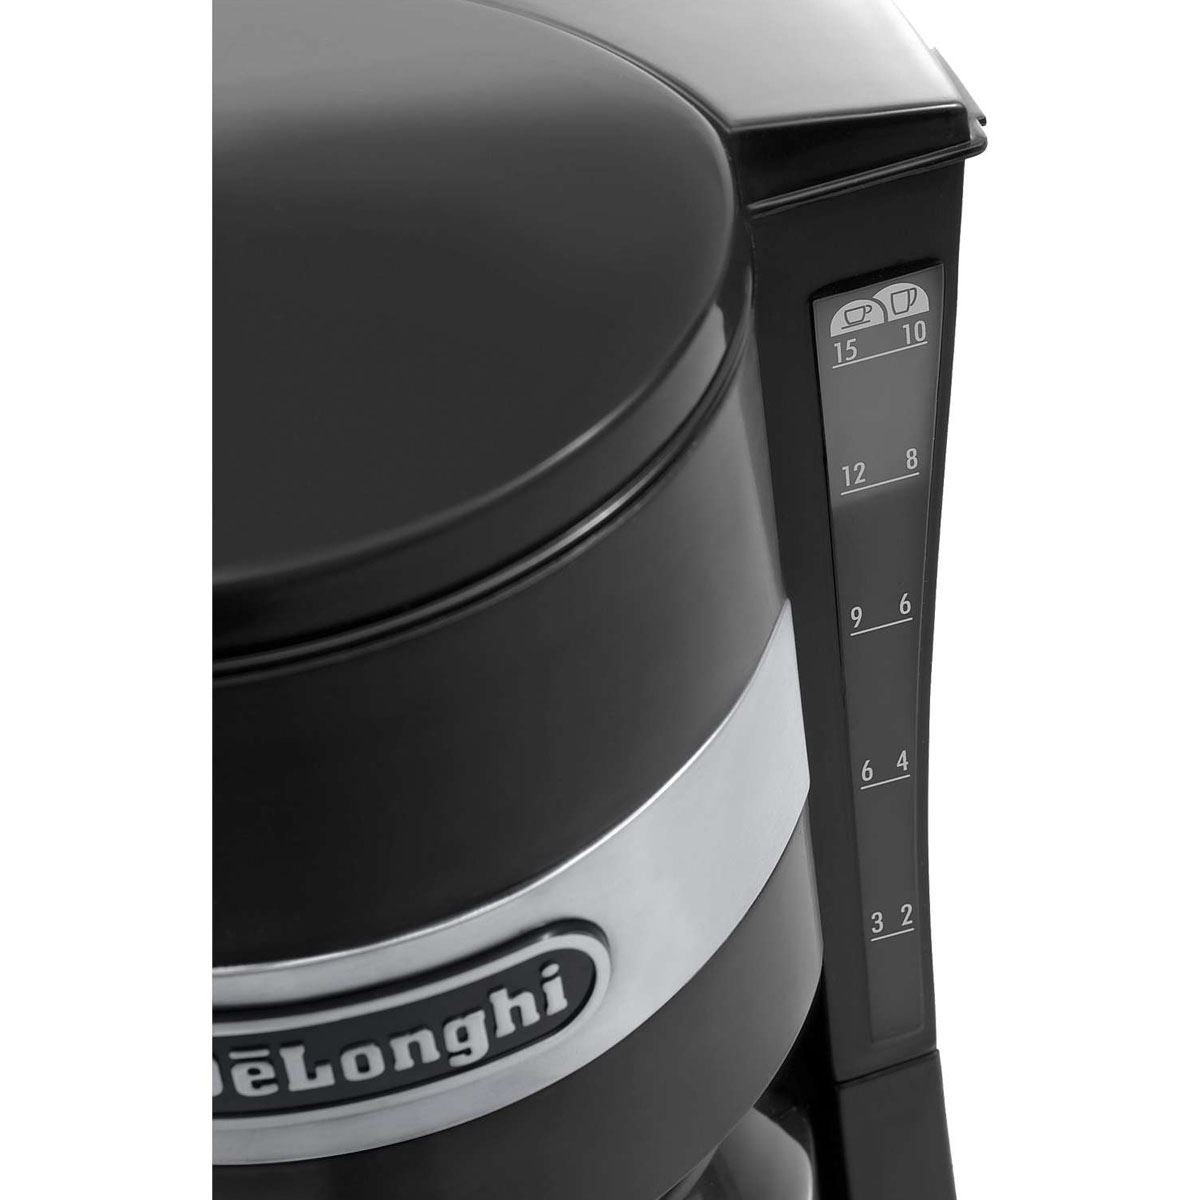 Delonghi ICM15210 Black 10 Cup 1.3L 900W Filter Coffee Maker Machine New 8004399327023 eBay